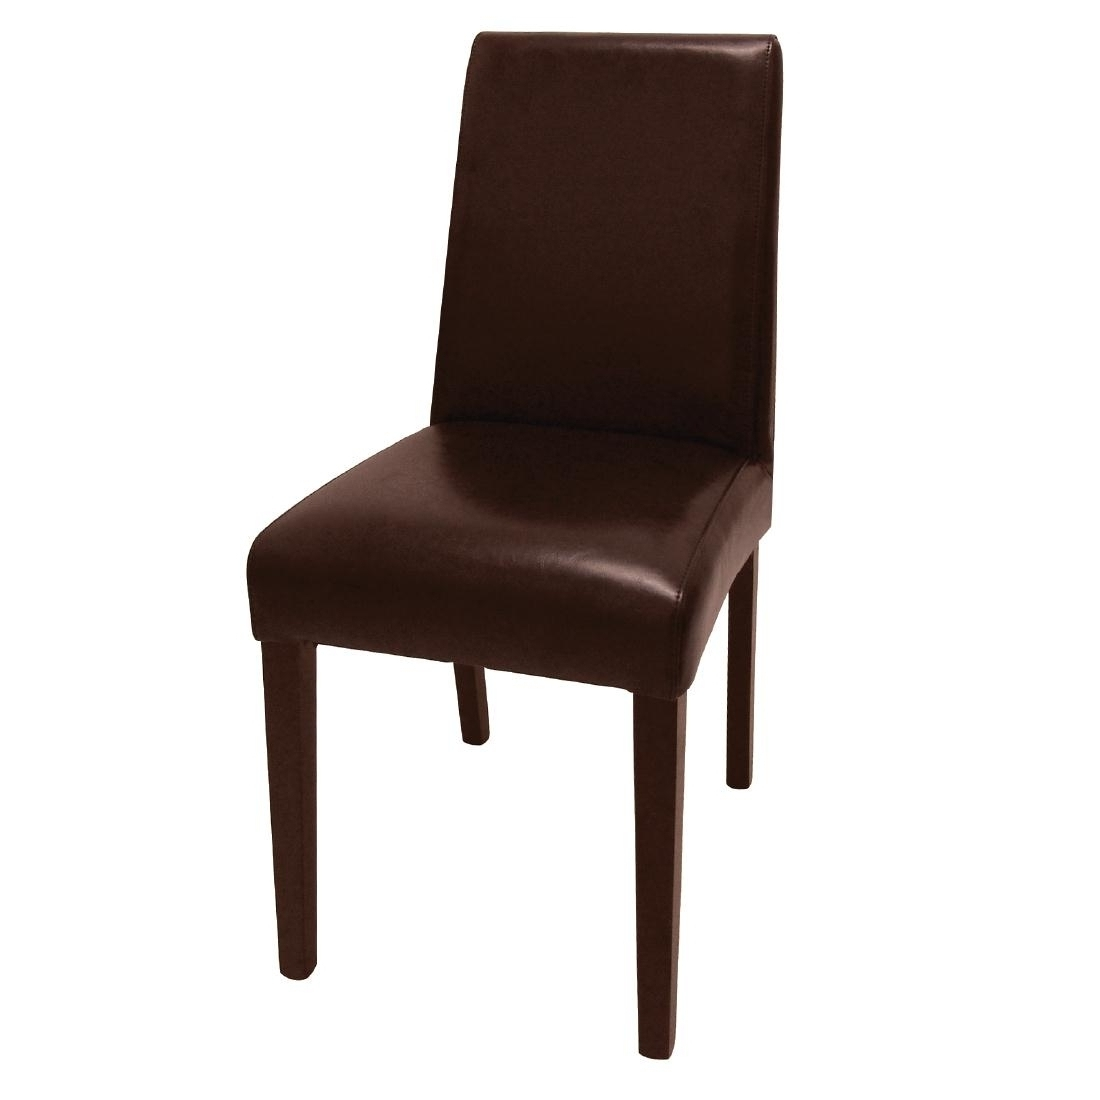 Dark Brown Leather Dining Chairs throughout 2017 Bolero Faux Leather Dining Chairs Dark Brown Pk 2-Pk 2, The Pubshop